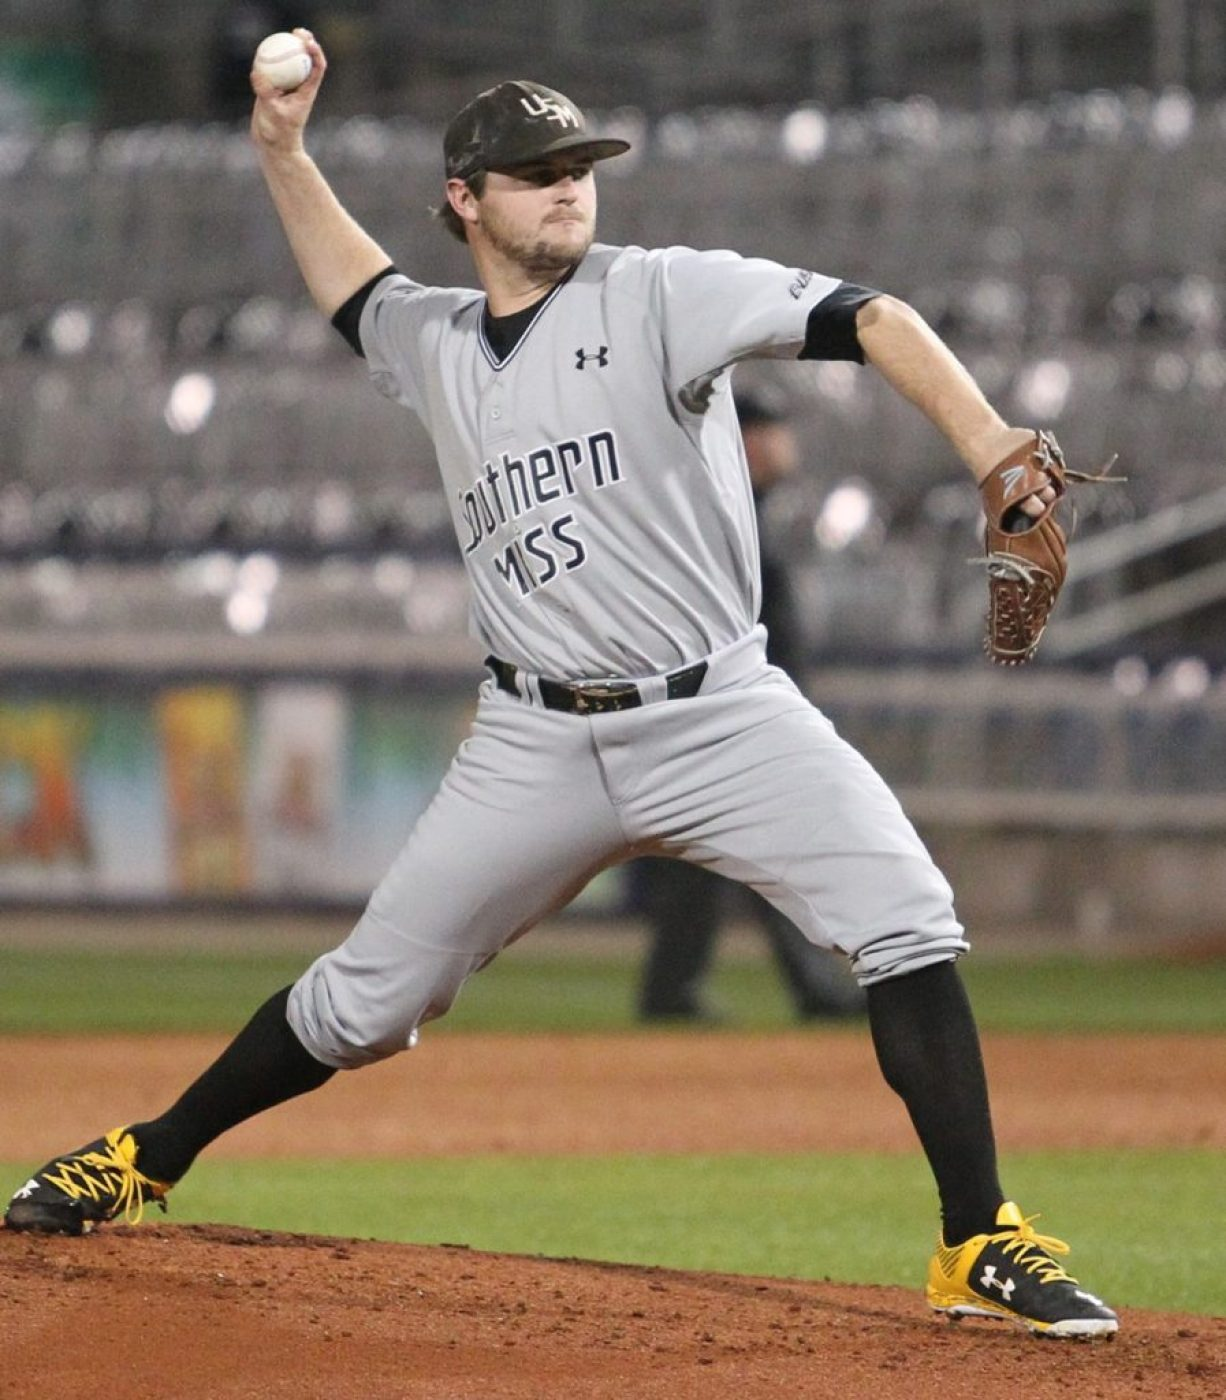 2015 C Spire Ferriss Trophy winner James McMahon of Southern Miss.